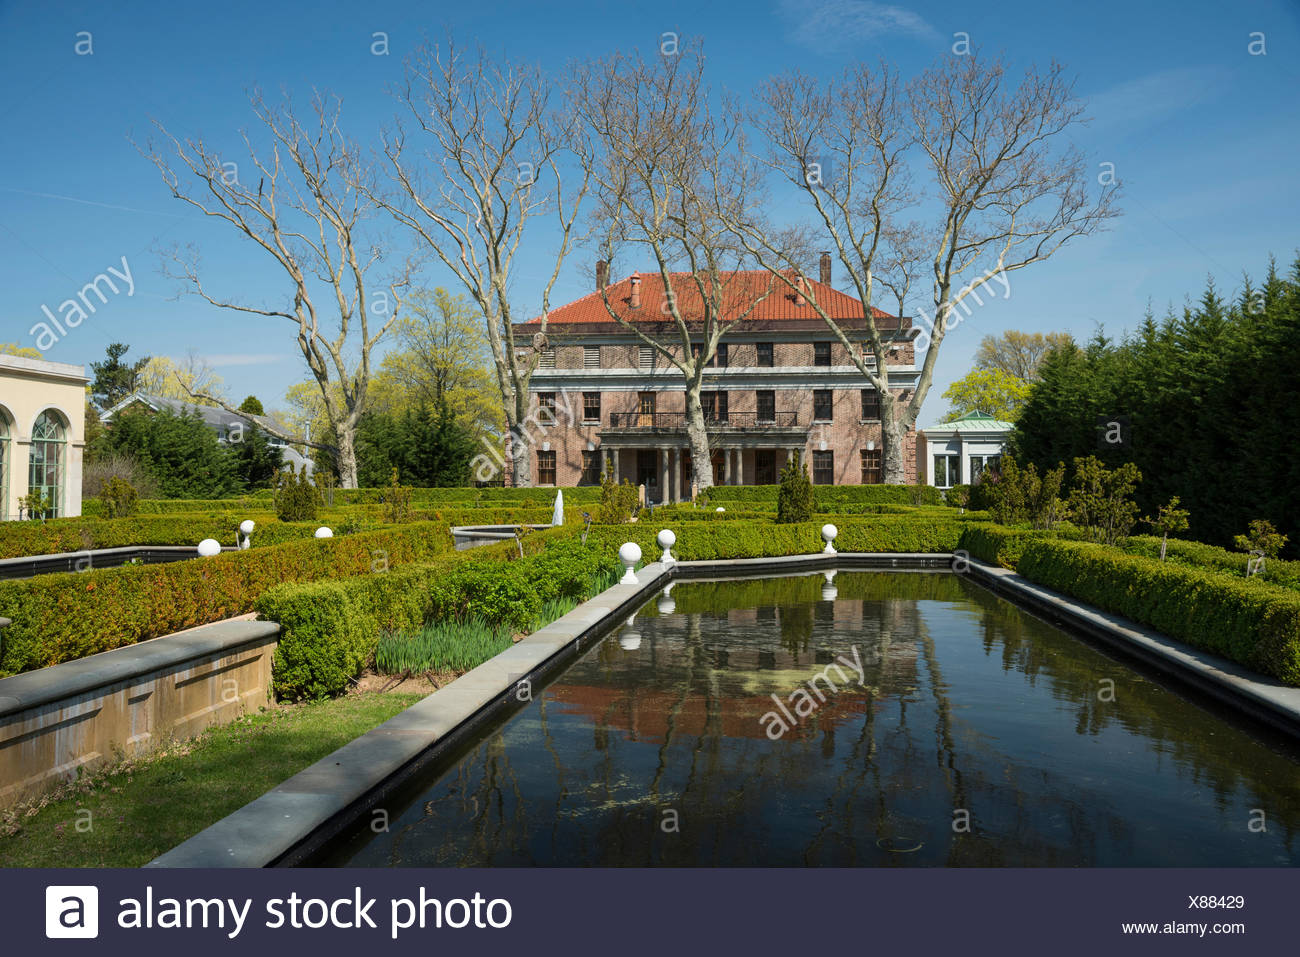 USA,New York,Brooklyn,Staten Island,Snug Harbor,Cultural center - Stock Image